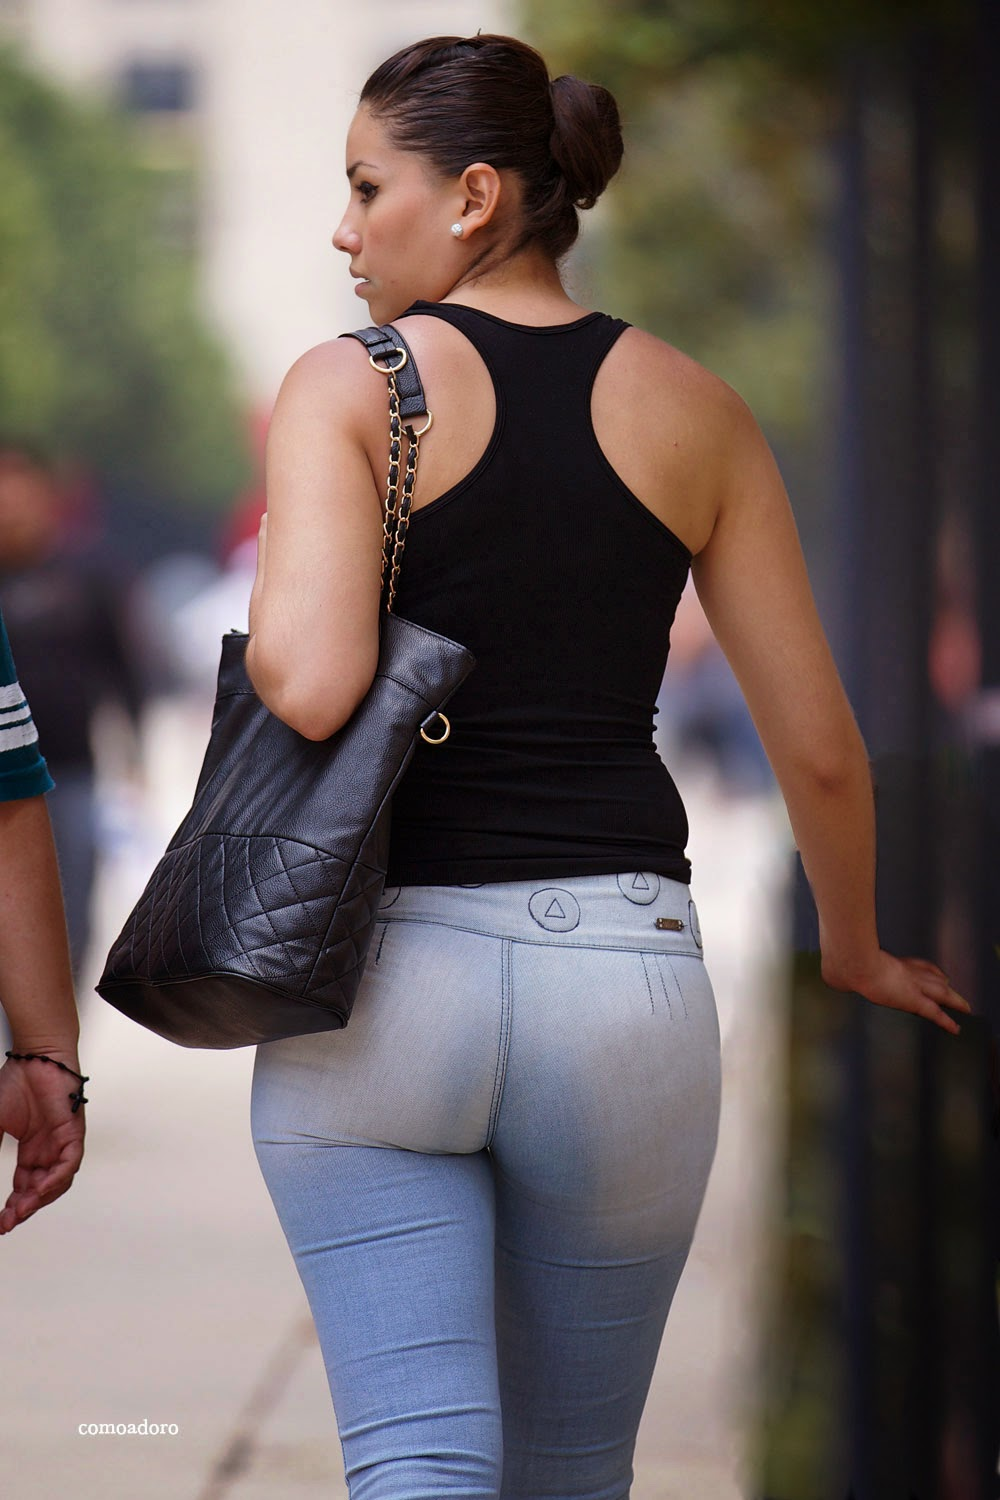 Girls with nice ass